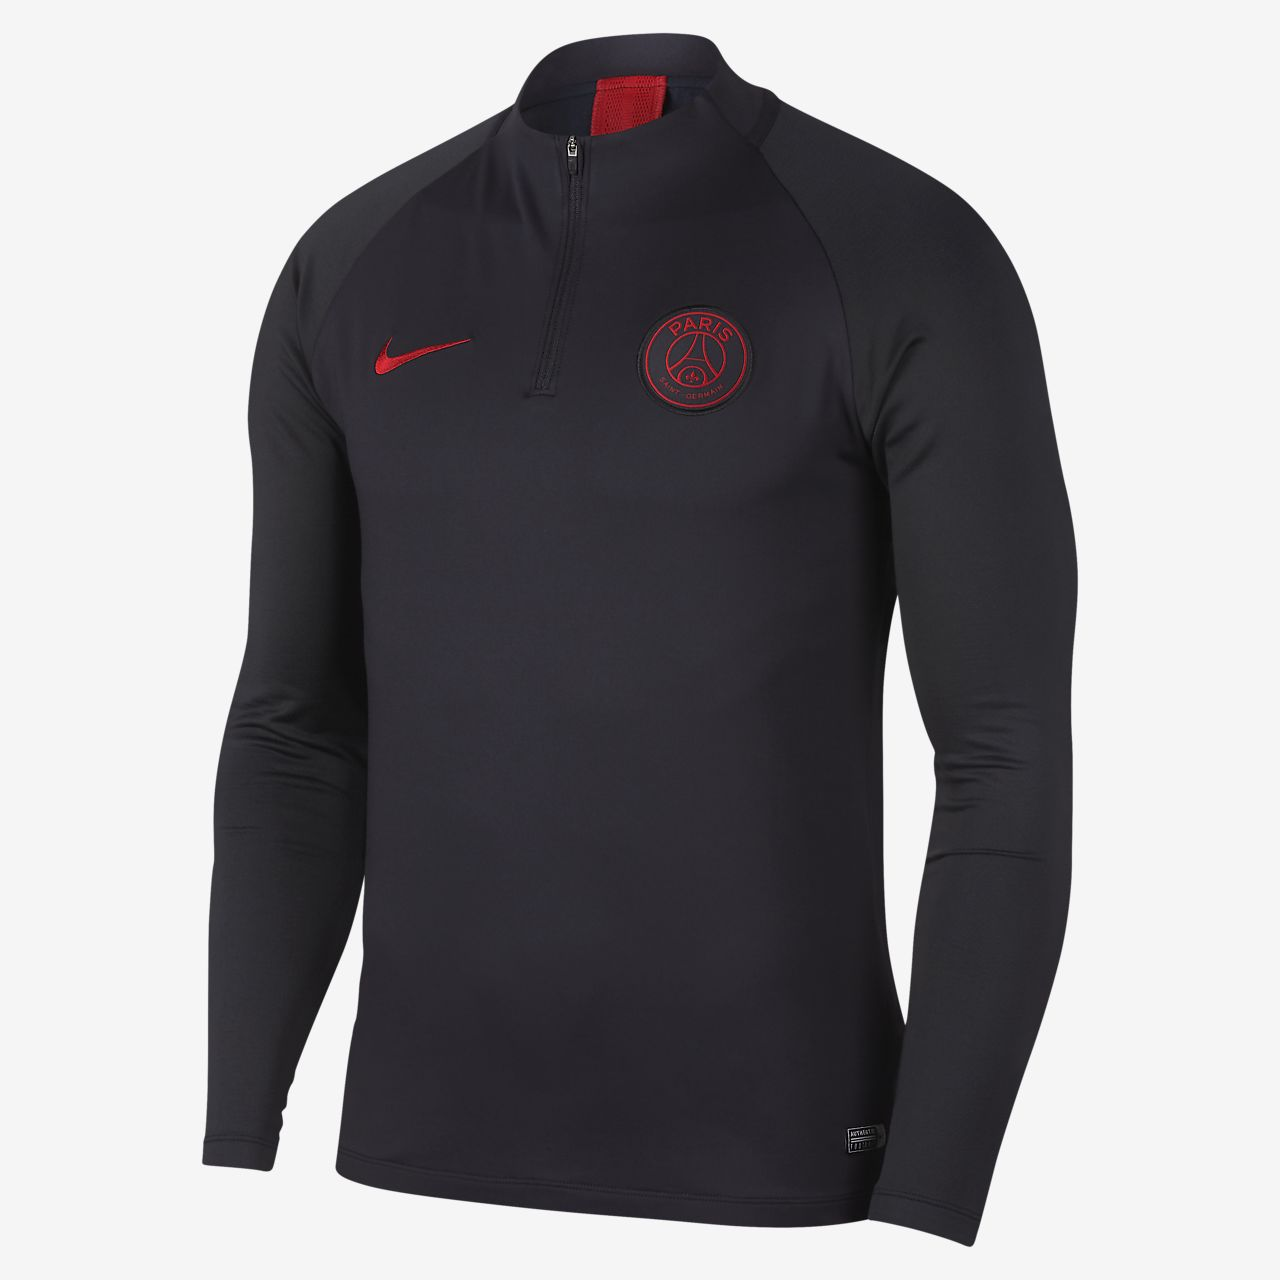 Haut de football Nike Dri-FIT Paris Saint-Germain Strike pour Homme